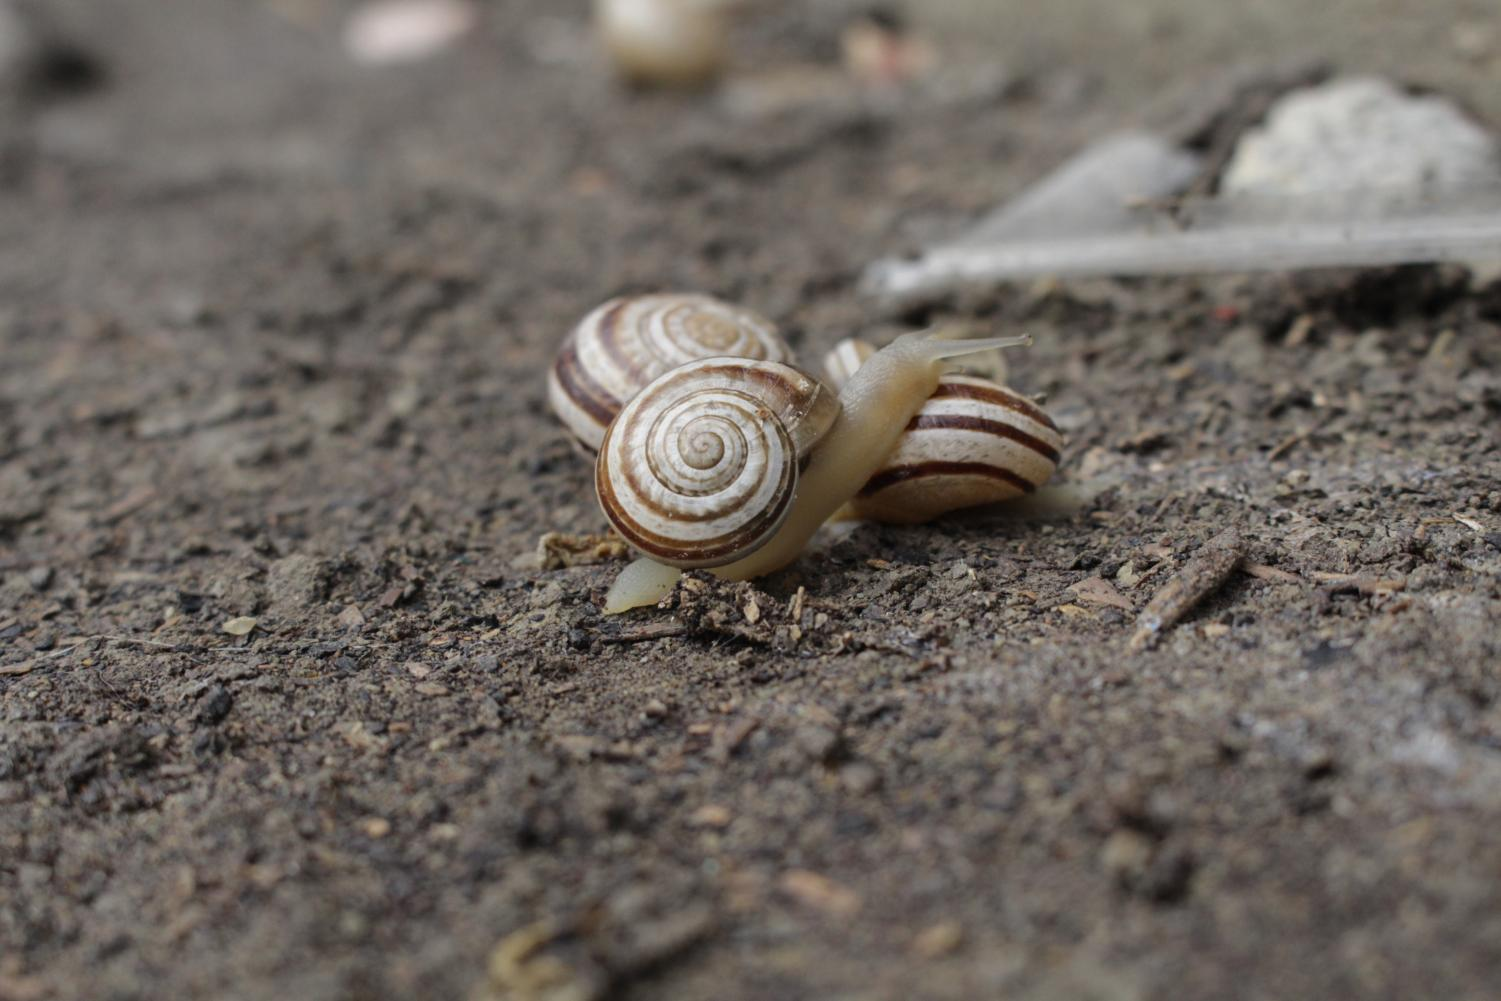 A+larger+snail+makes+its+way+through+the+dirt+in+order+to+reach+the+rest+of+its+escargatoire+%28a+group+of+snails%29.+The+spirals+on+the+snail%E2%80%99s+shell+are+a+textbook+example+of+biological+chirality.+The+definite+colors+on+the+shell+are+caused+by+the+snail%E2%80%99s+ability+to+fit+its+vital+organs+inside+the+shell+for+protection.